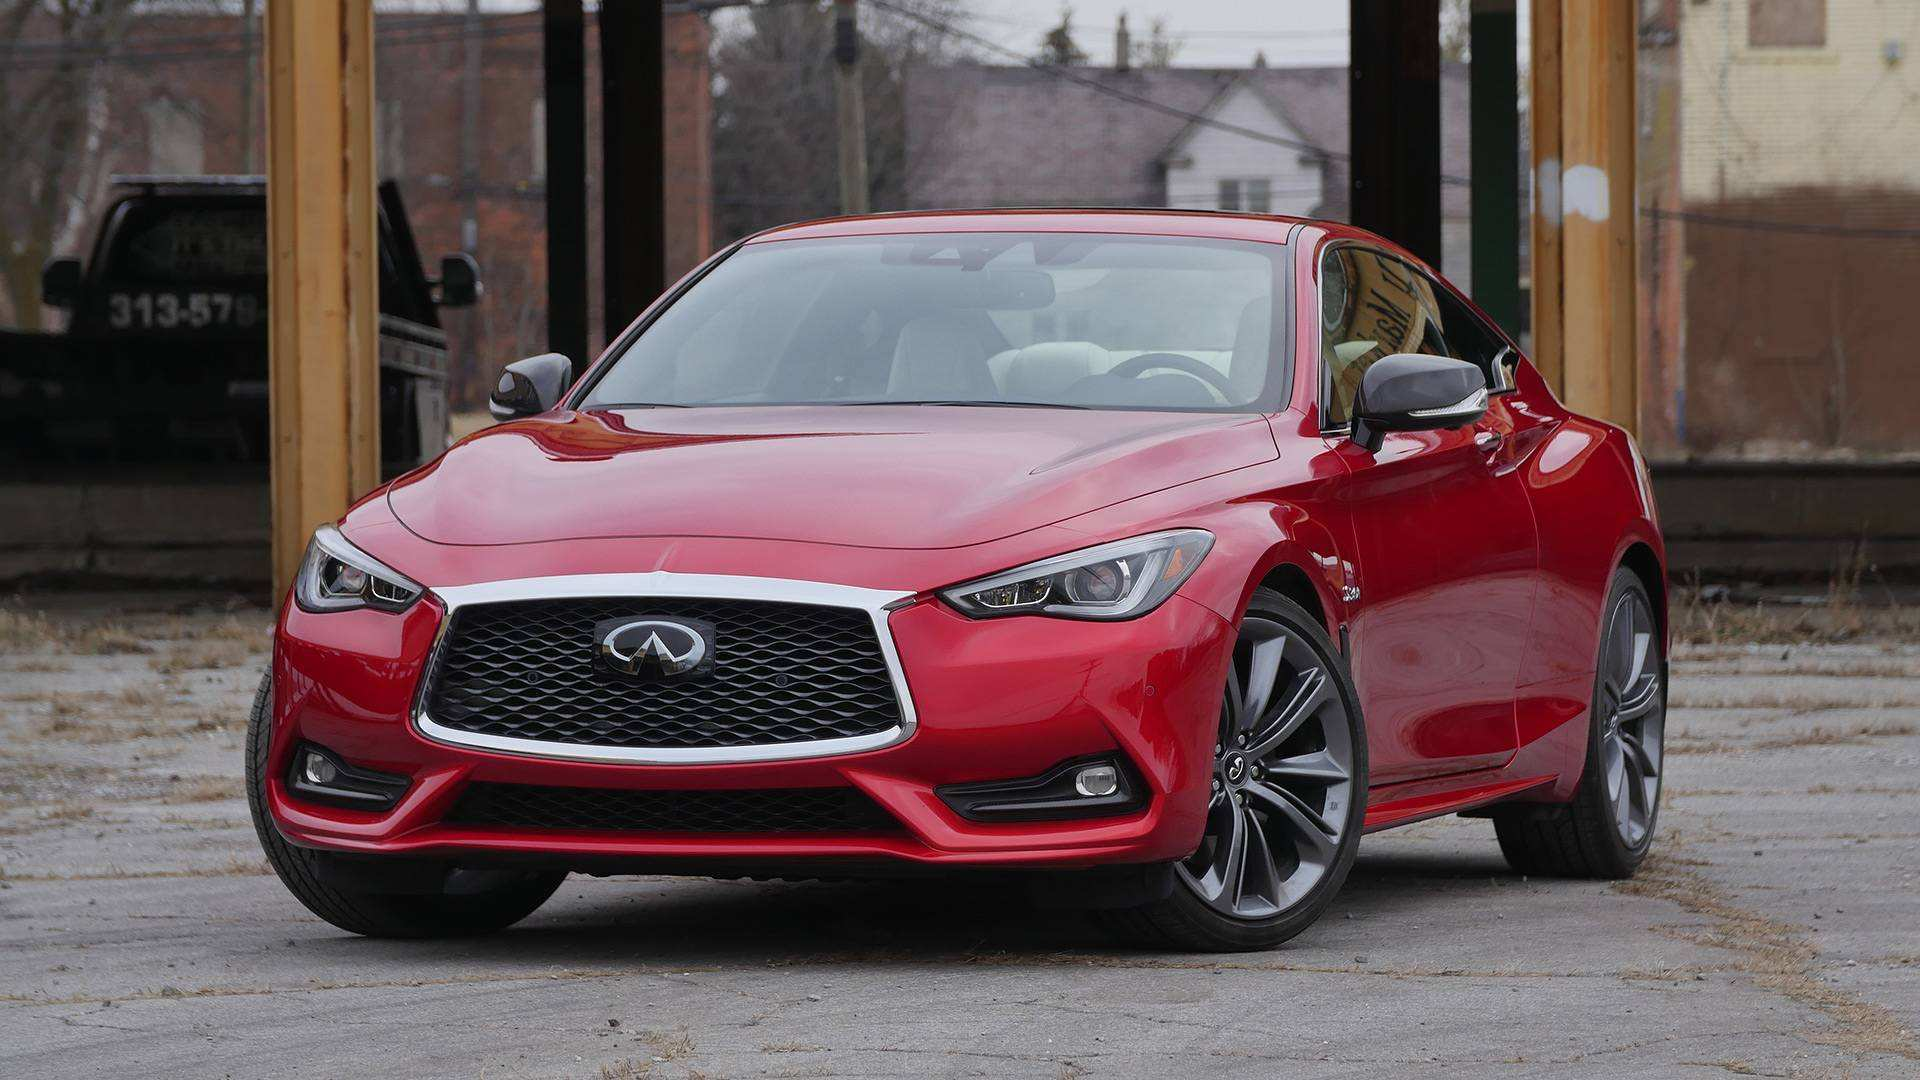 30 Best 2020 Infiniti Q70 Engine